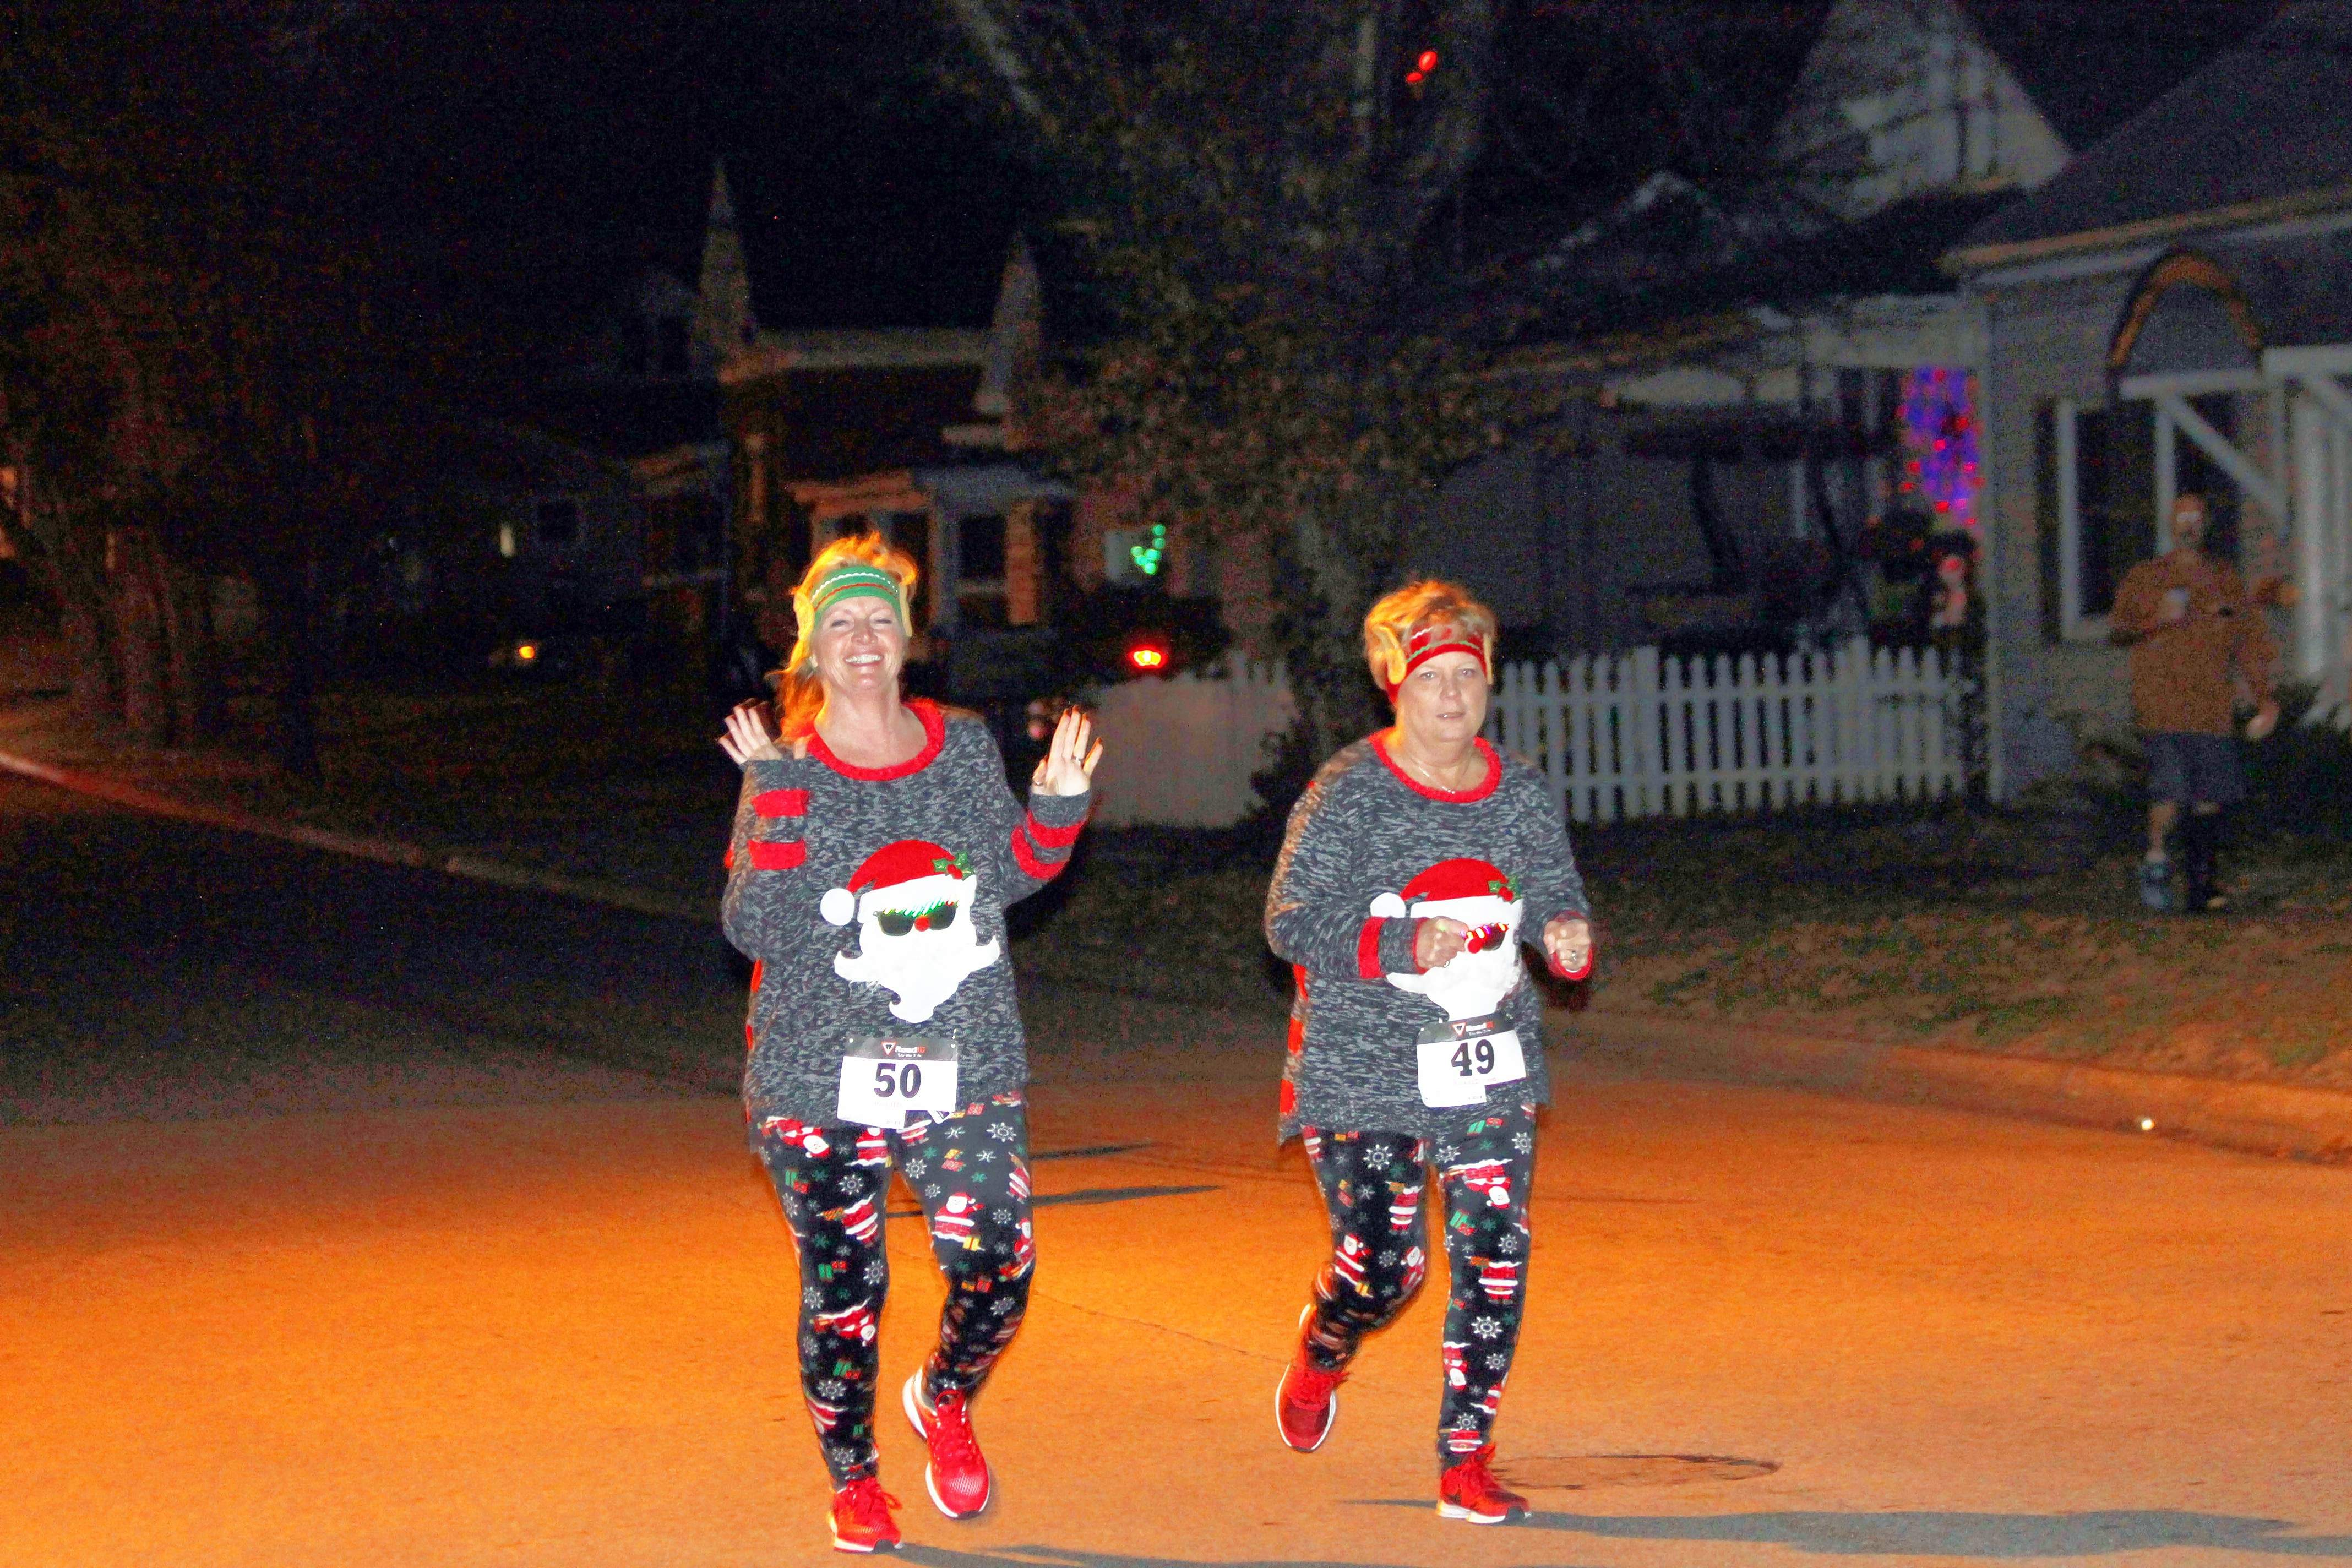 The Jingle Bell Fun Run/Santa Shuffle drew a total of 33 participants. Gilster-Mary Lee provided hot cocoa, brownies and cookies for participants.